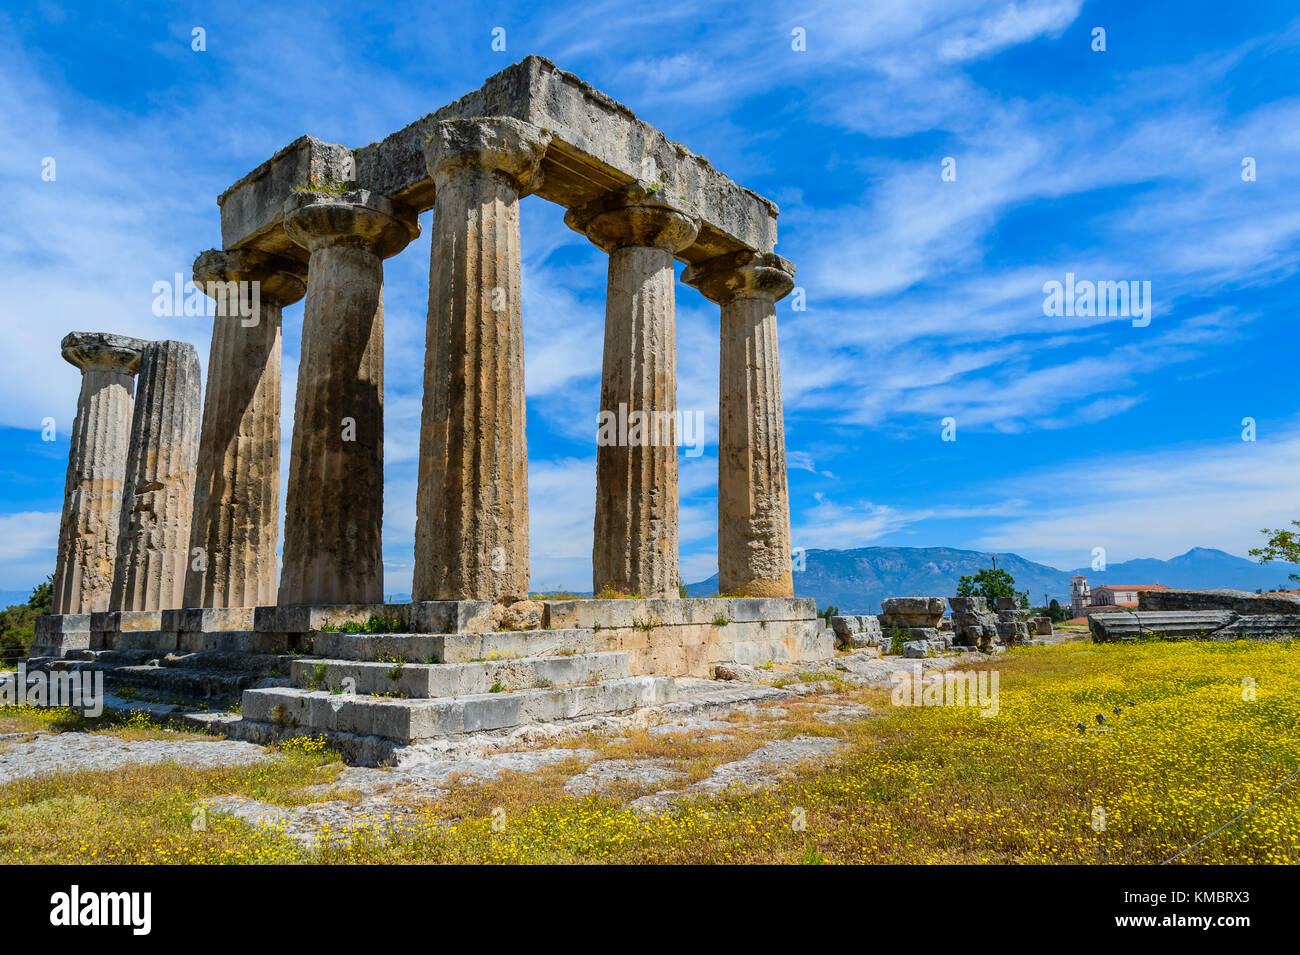 The ruins of the Apollo Temple in ancient Corinth, Greece Stock Photo